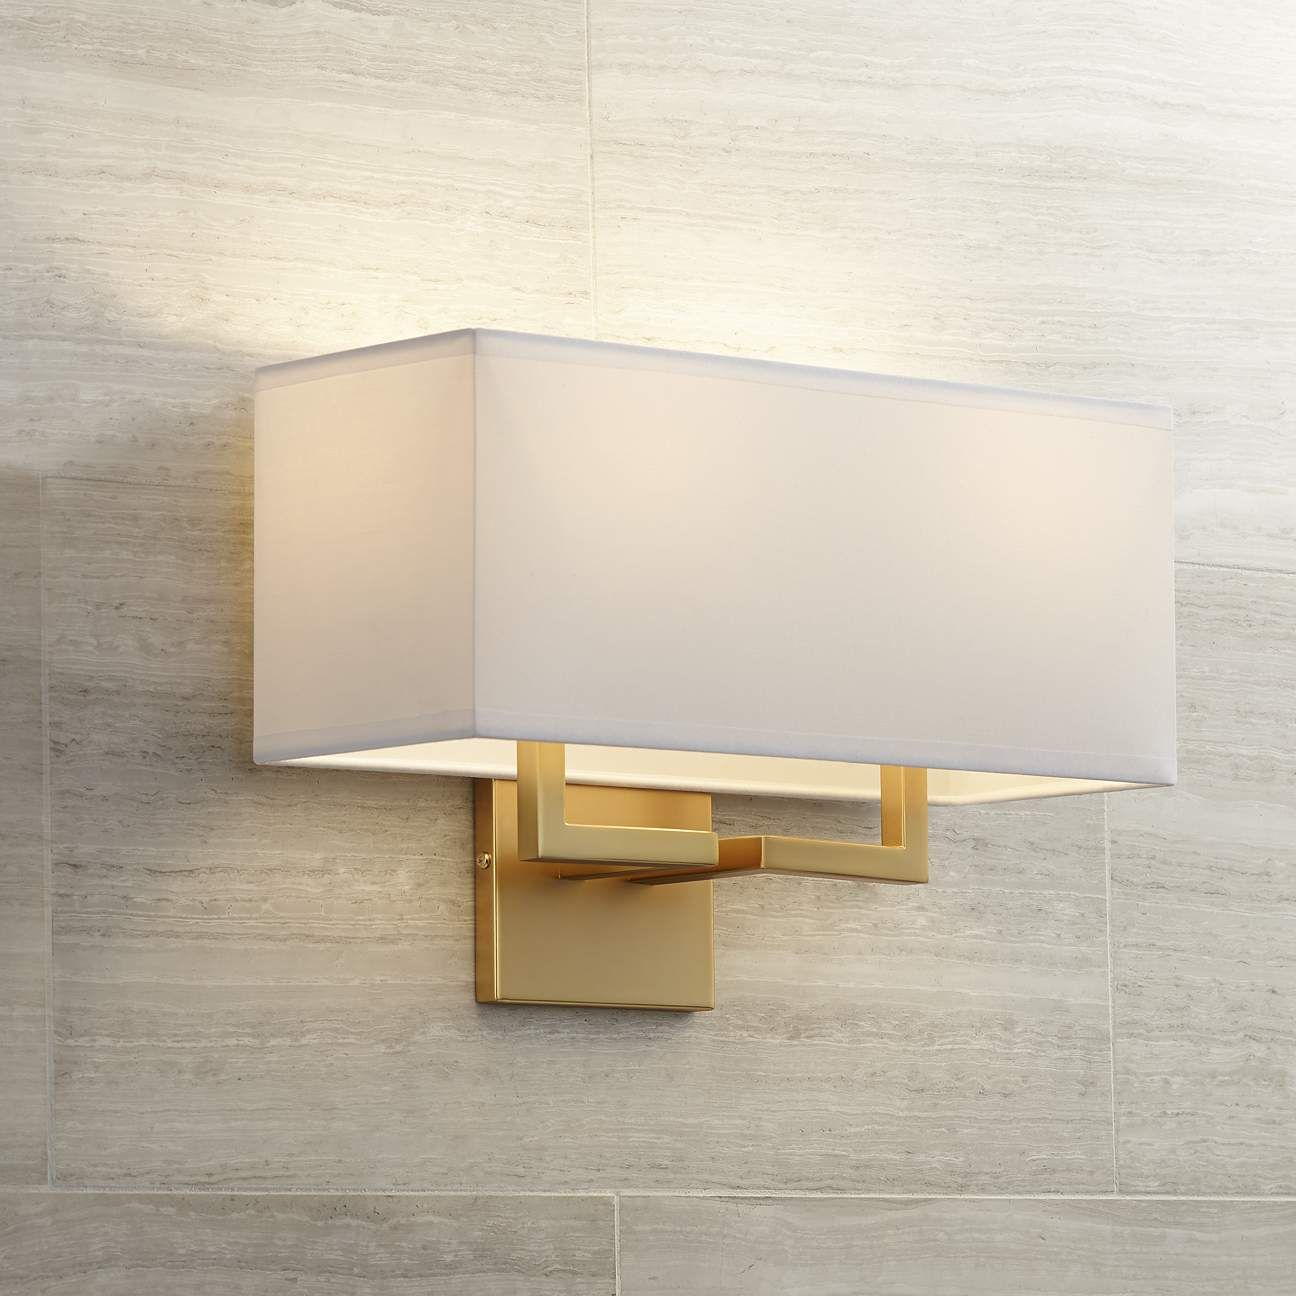 George Kovacs Rectangle 11 High Gold Wall Sconce W1297 Lamps Plus In 2021 Gold Wall Sconce Wall Sconces Gold Walls